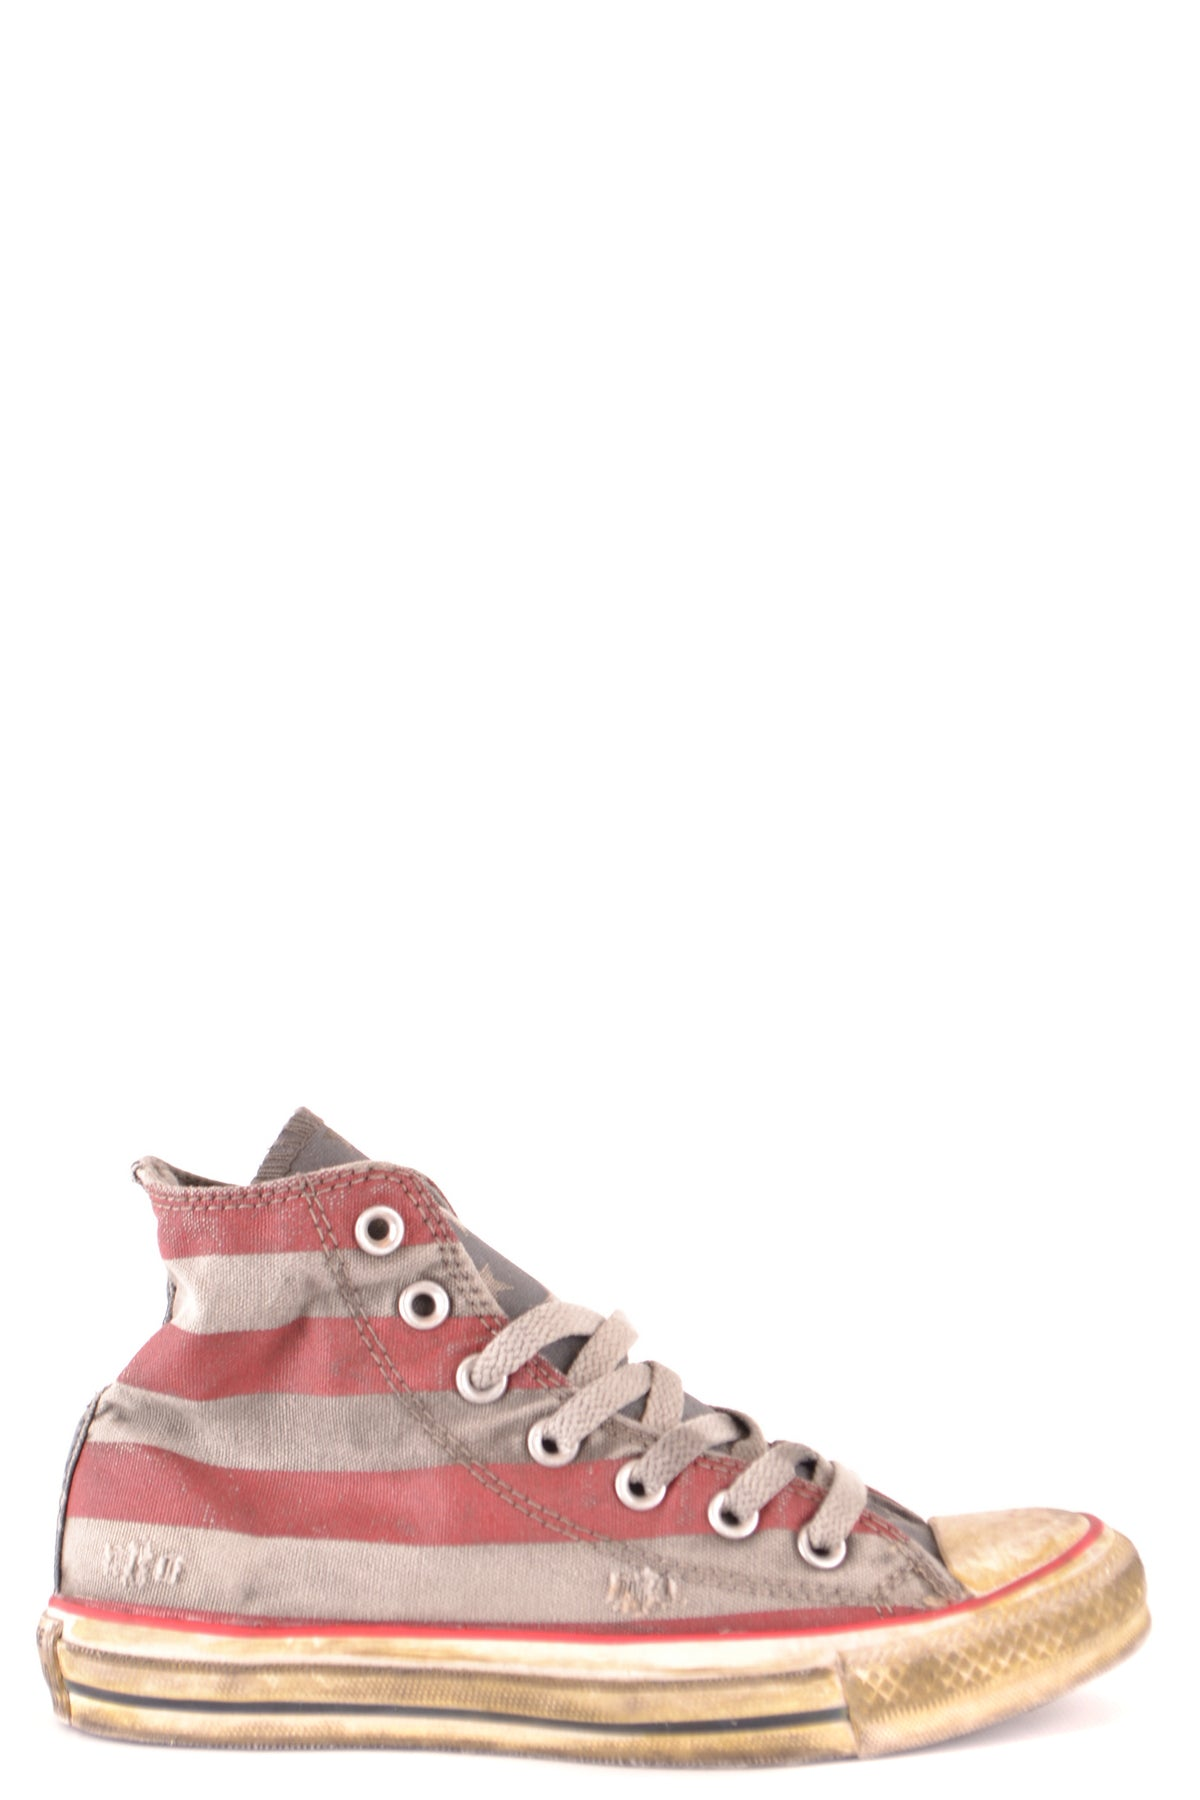 Shoes Converse-36-Product Details Type Of Accessory: ShoesTerms: New With LabelYear: 2018Main Color: MulticolorGender: WomanMade In: ChinaManufacturer Part Number: 156887CSize: EuSeason: Spring / SummerComposition: Tissue 100%-Keyomi-Sook